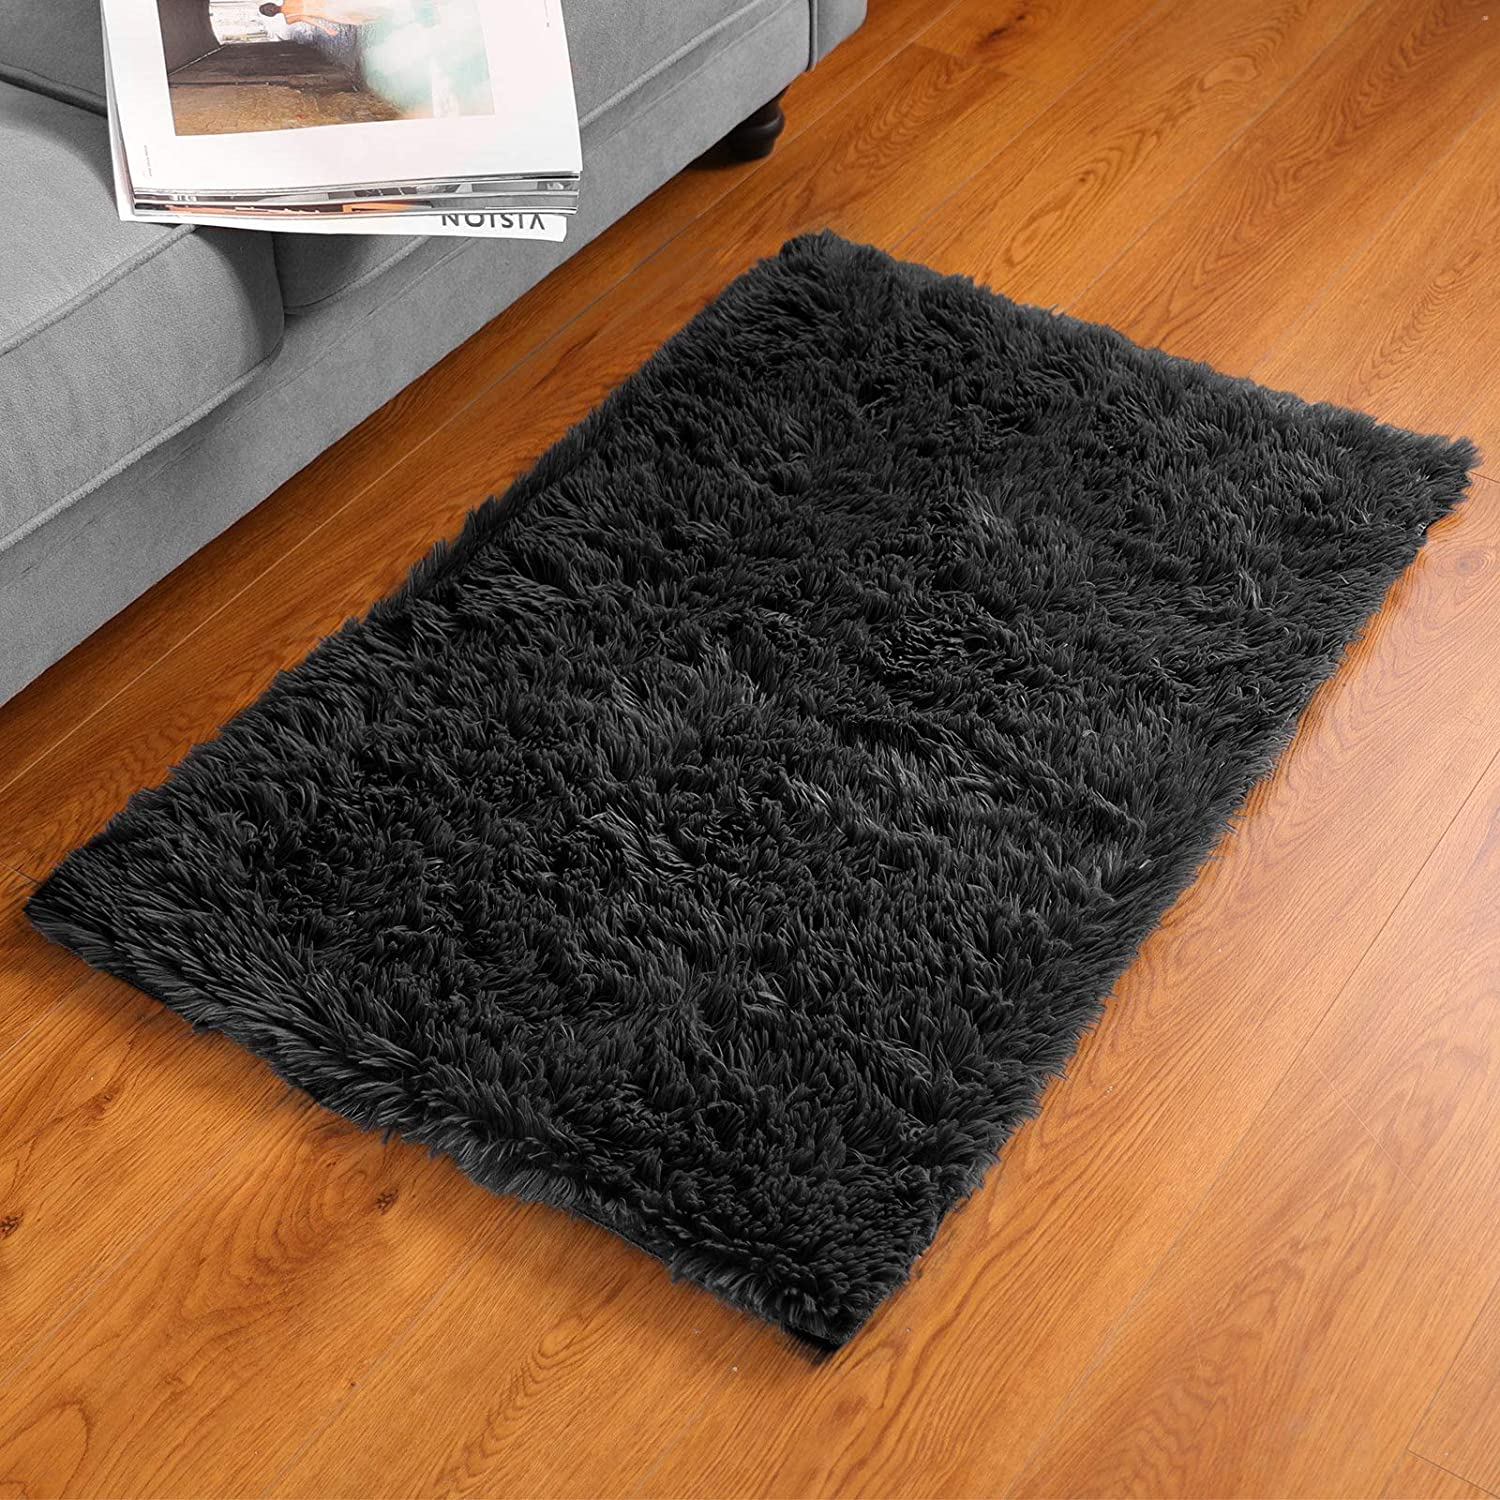 BAYKA Fluffy Machine Washable Area Rug Indoor Ultra Soft Shag Area Rug for Bedroom, Non-Slip Floor Carpet for Kids Home Decor Nursery Rug 2x3 Feet Black